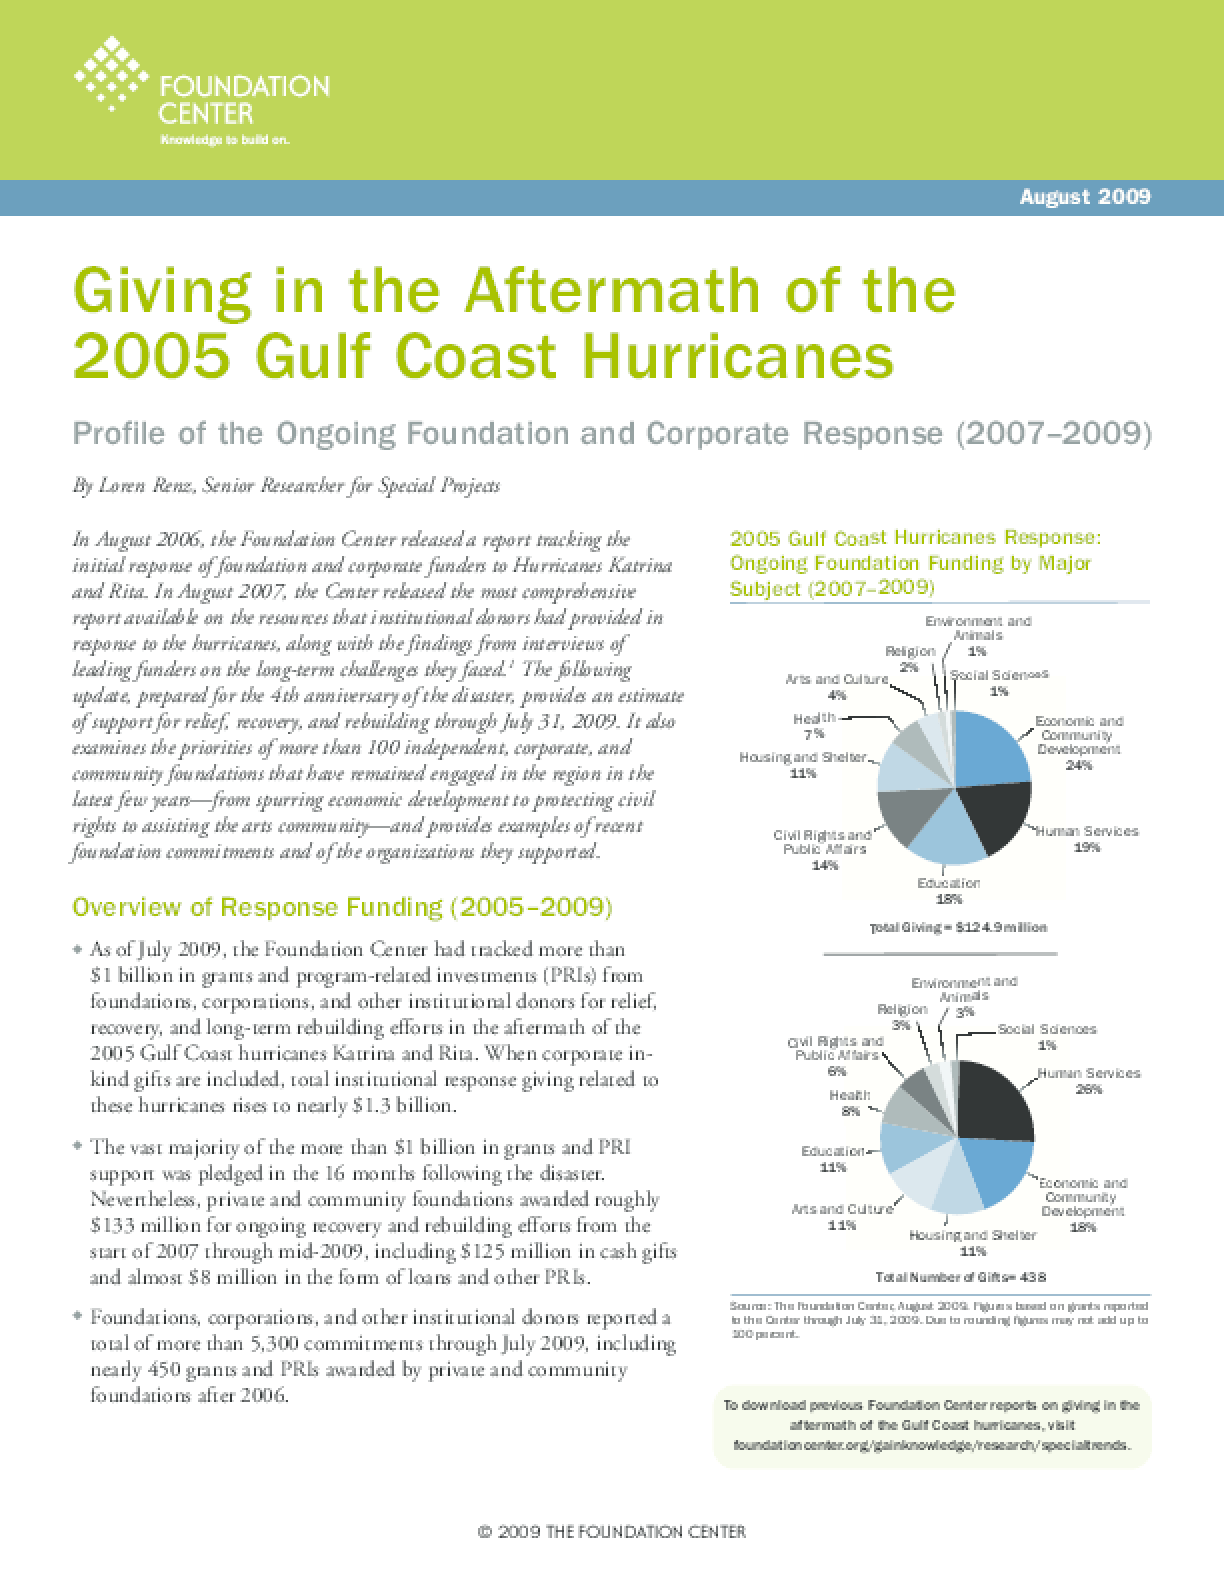 Giving in the Aftermath of the 2005 Gulf Coast Hurricanes: Profile of the Ongoing Foundation and Corporate Response (2007-2009)